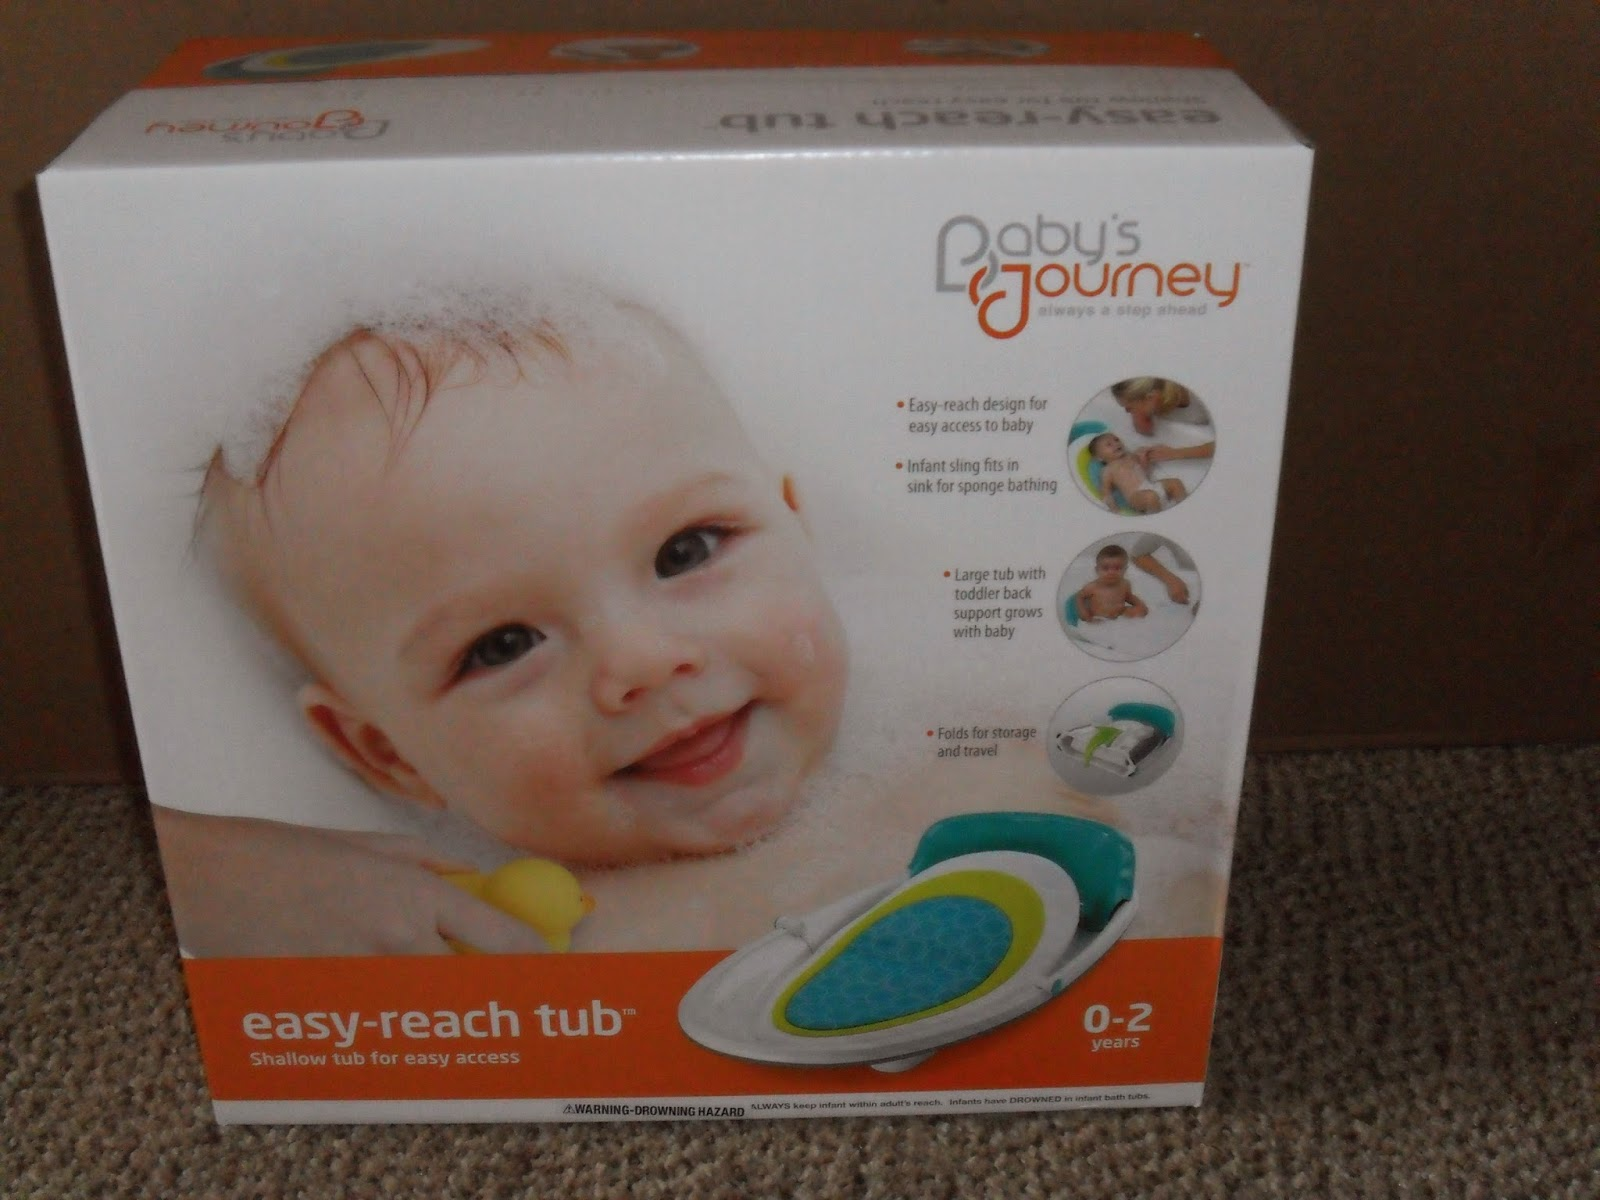 Making bath time safe with Baby's Journey. Easy Reach-Tub.  Review  (Blu me away or Pink of me Event)